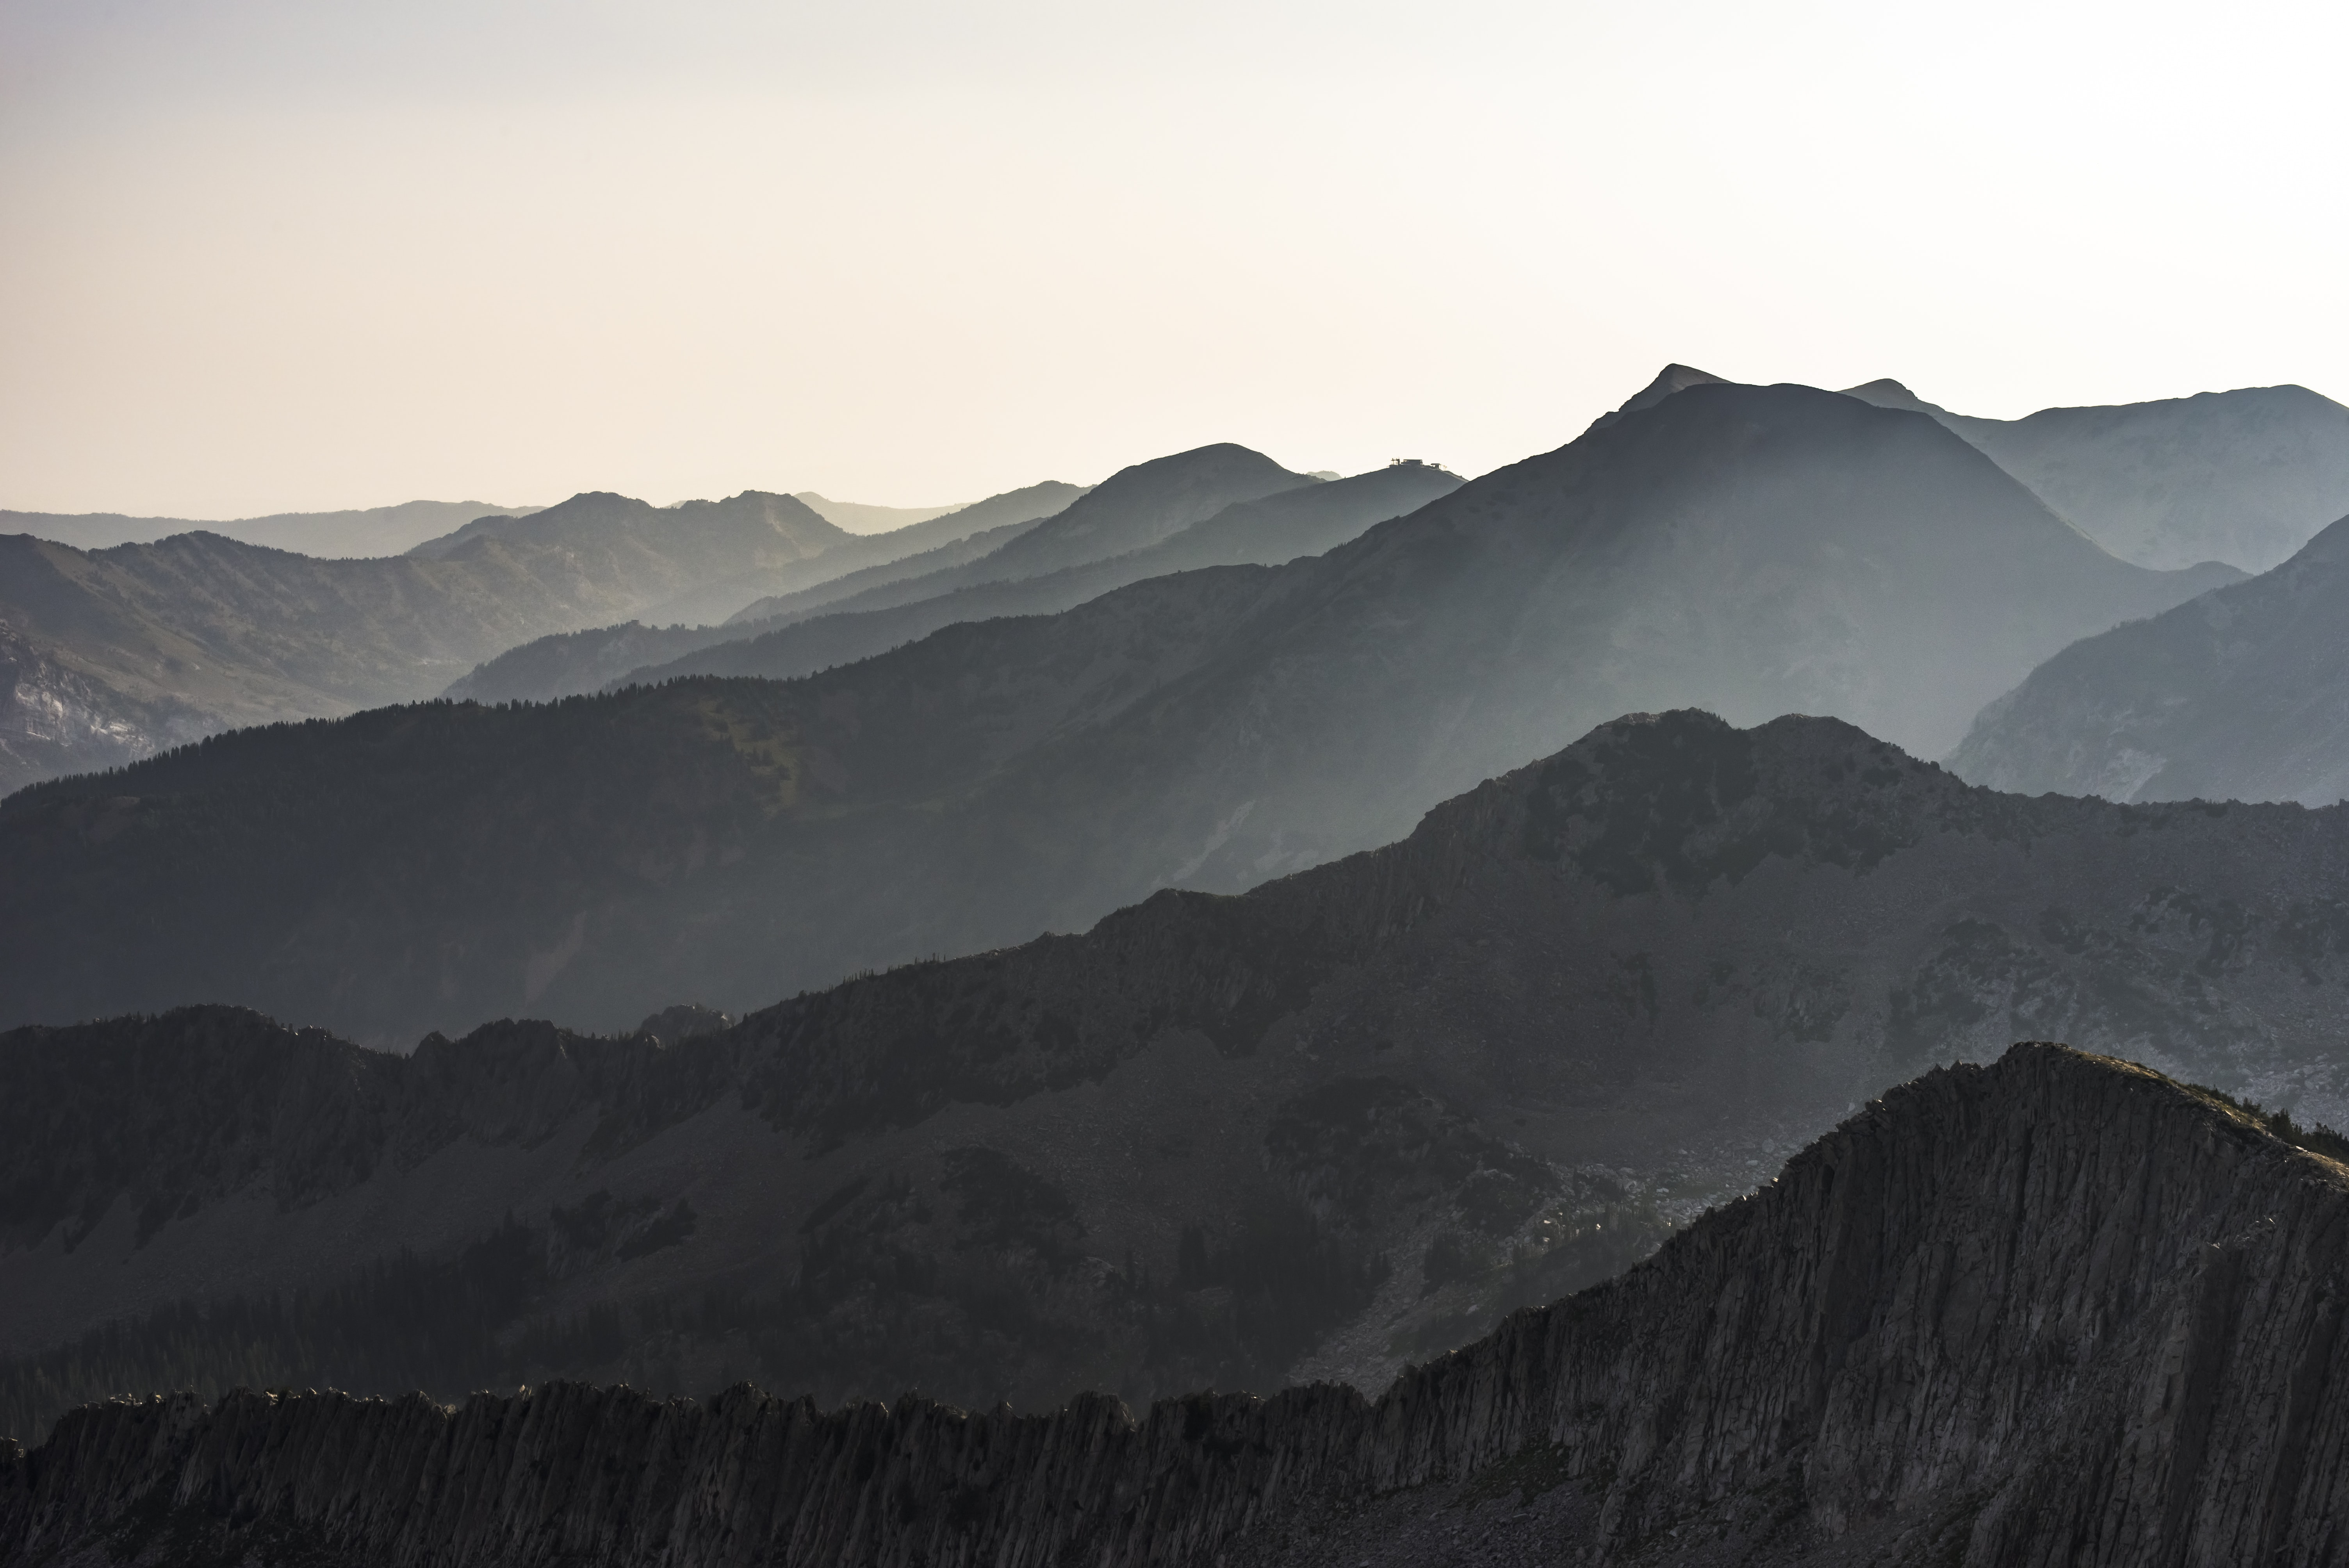 photo of mountains during daytime